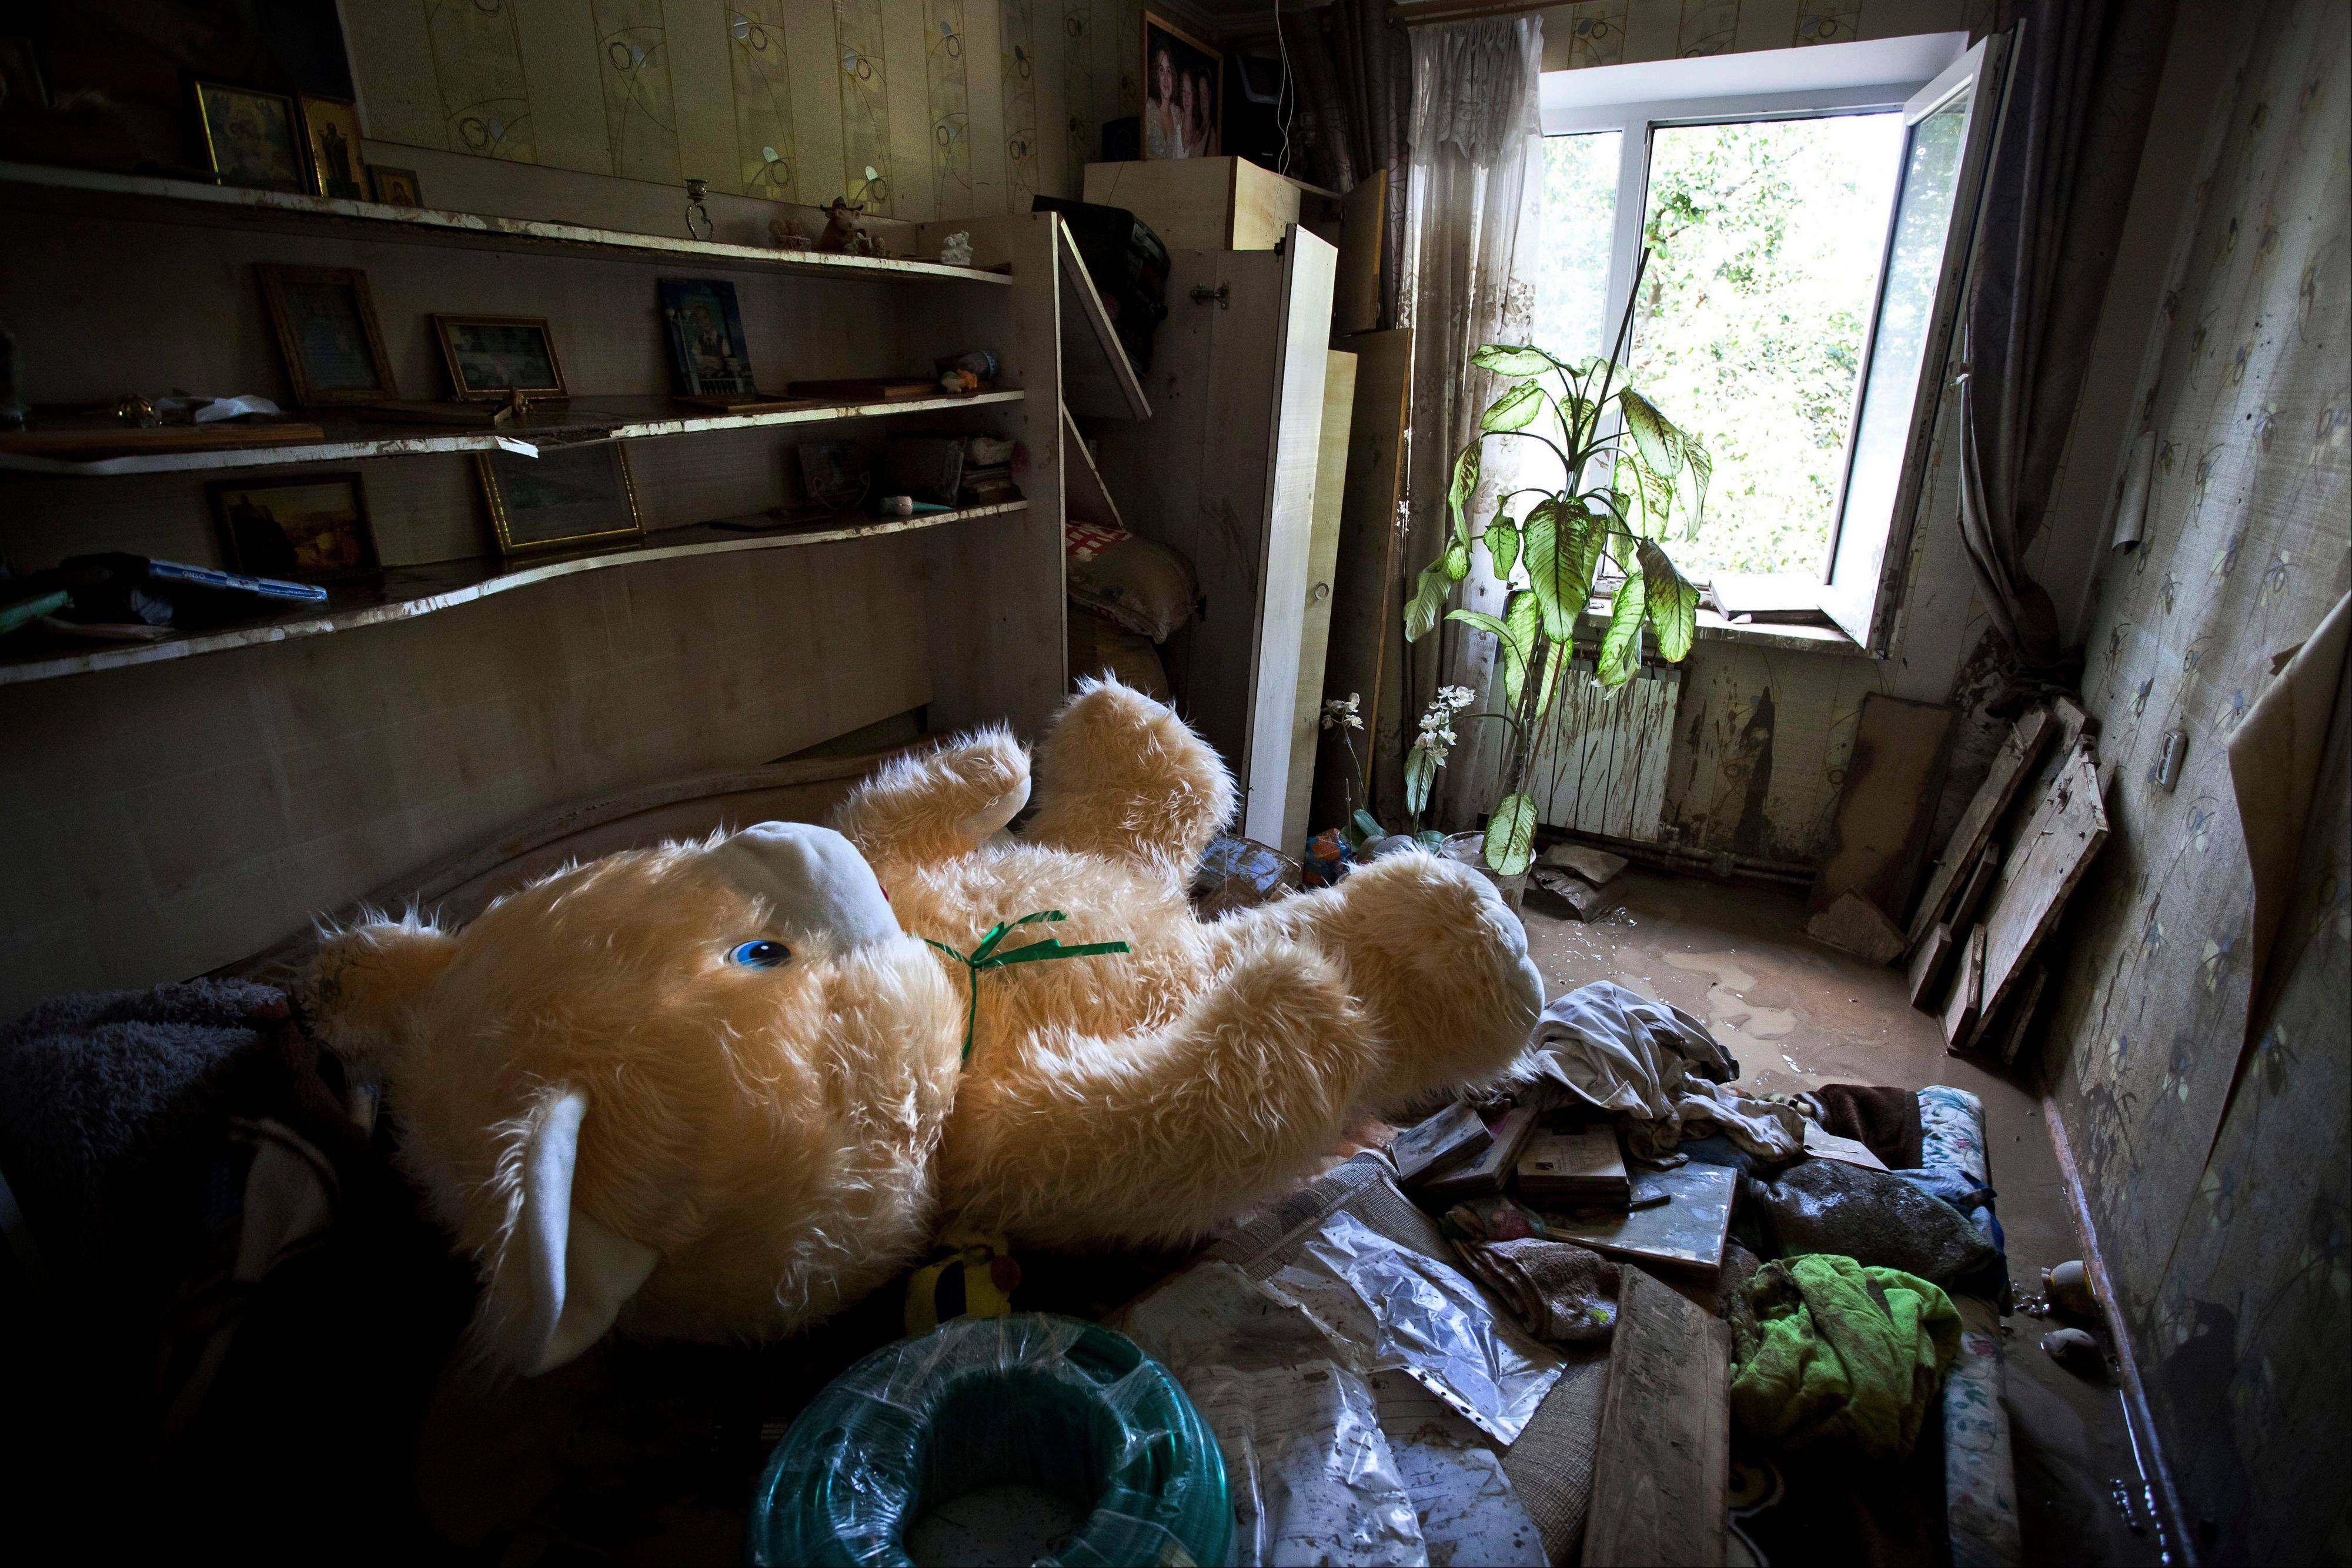 A teddy bear lying on a pile of garbage inside a flooded house Sunday in Krimsk, about 750 miles south of Moscow, Russia. The death toll from severe flooding in the Black Sea region of southern Russia has risen to at least 150.